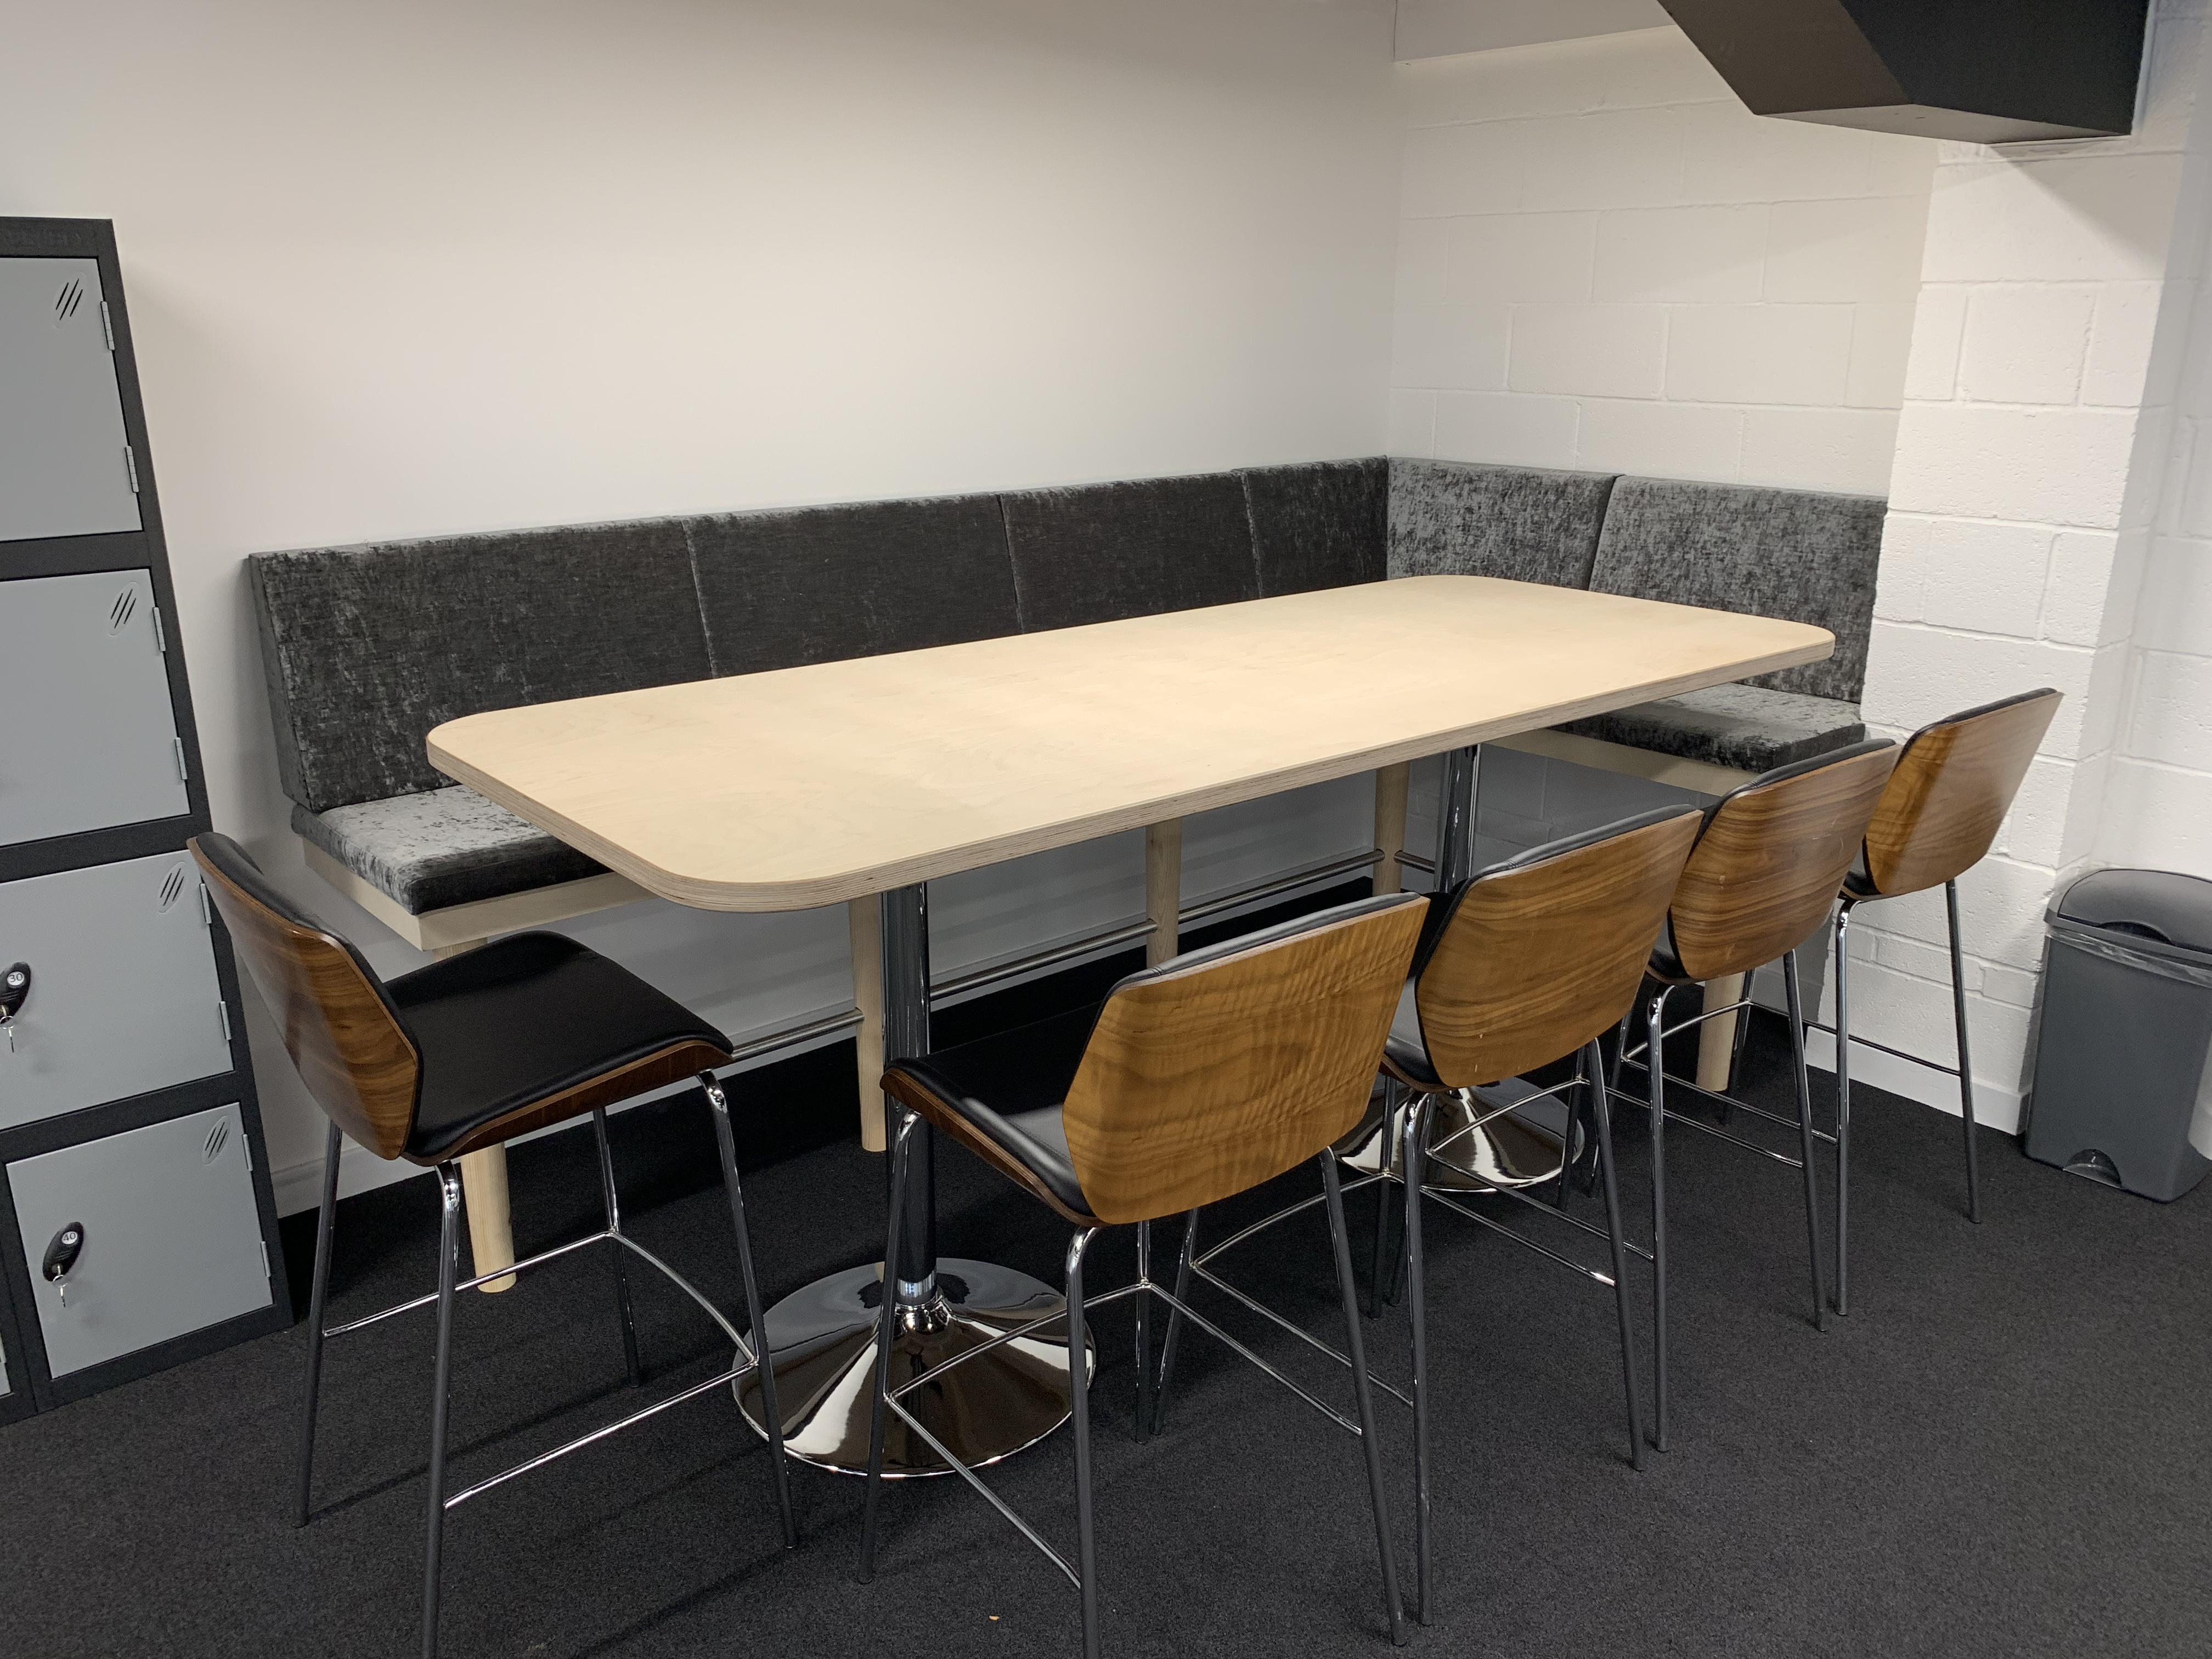 Upholstered seating area with birch plywood table